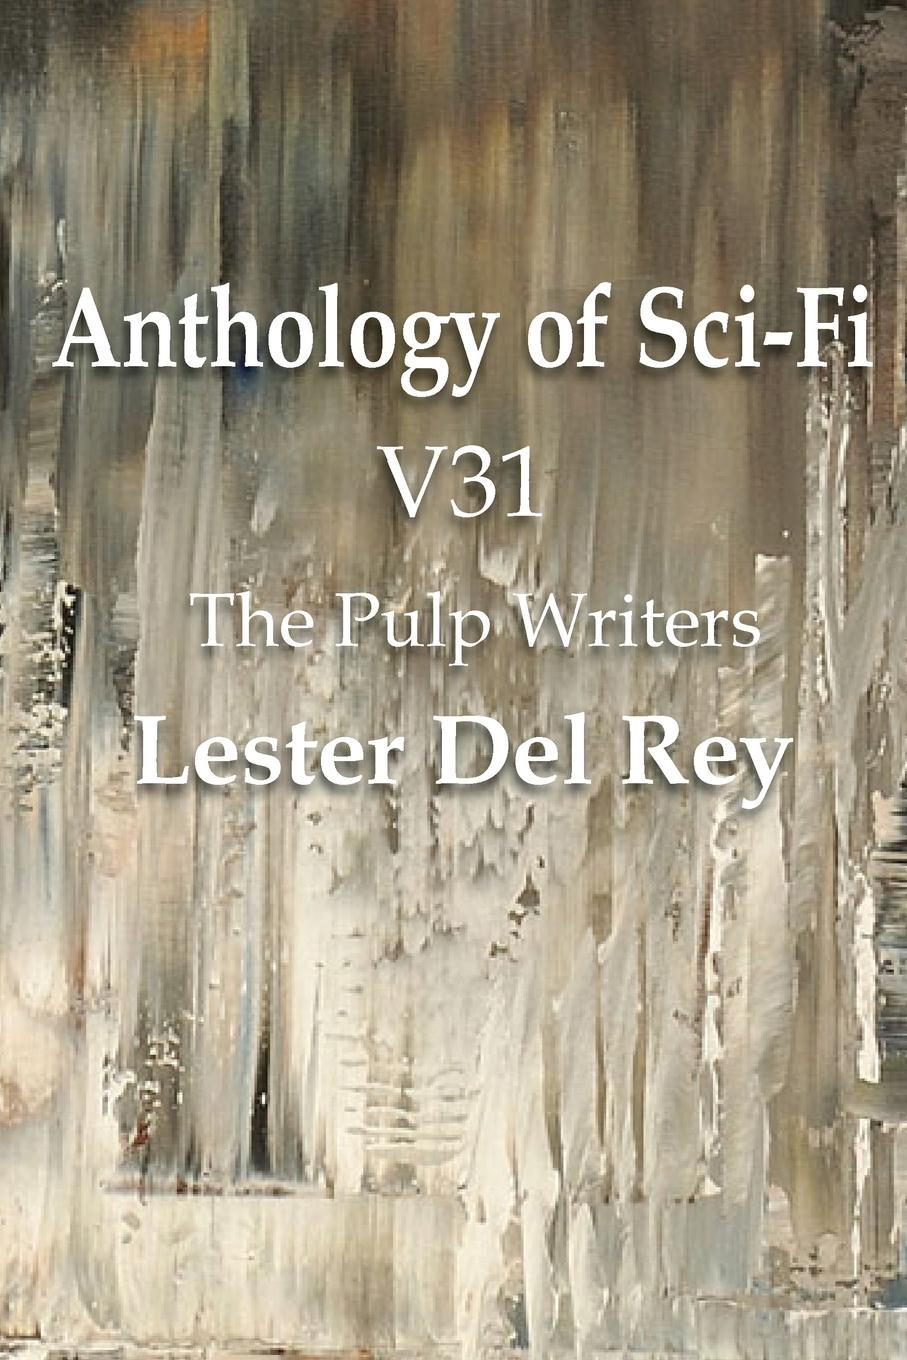 Lester Del Rey Anthology of Sci-Fi V31, the Pulp Writers - Lester del Rey alison kent no strings attached